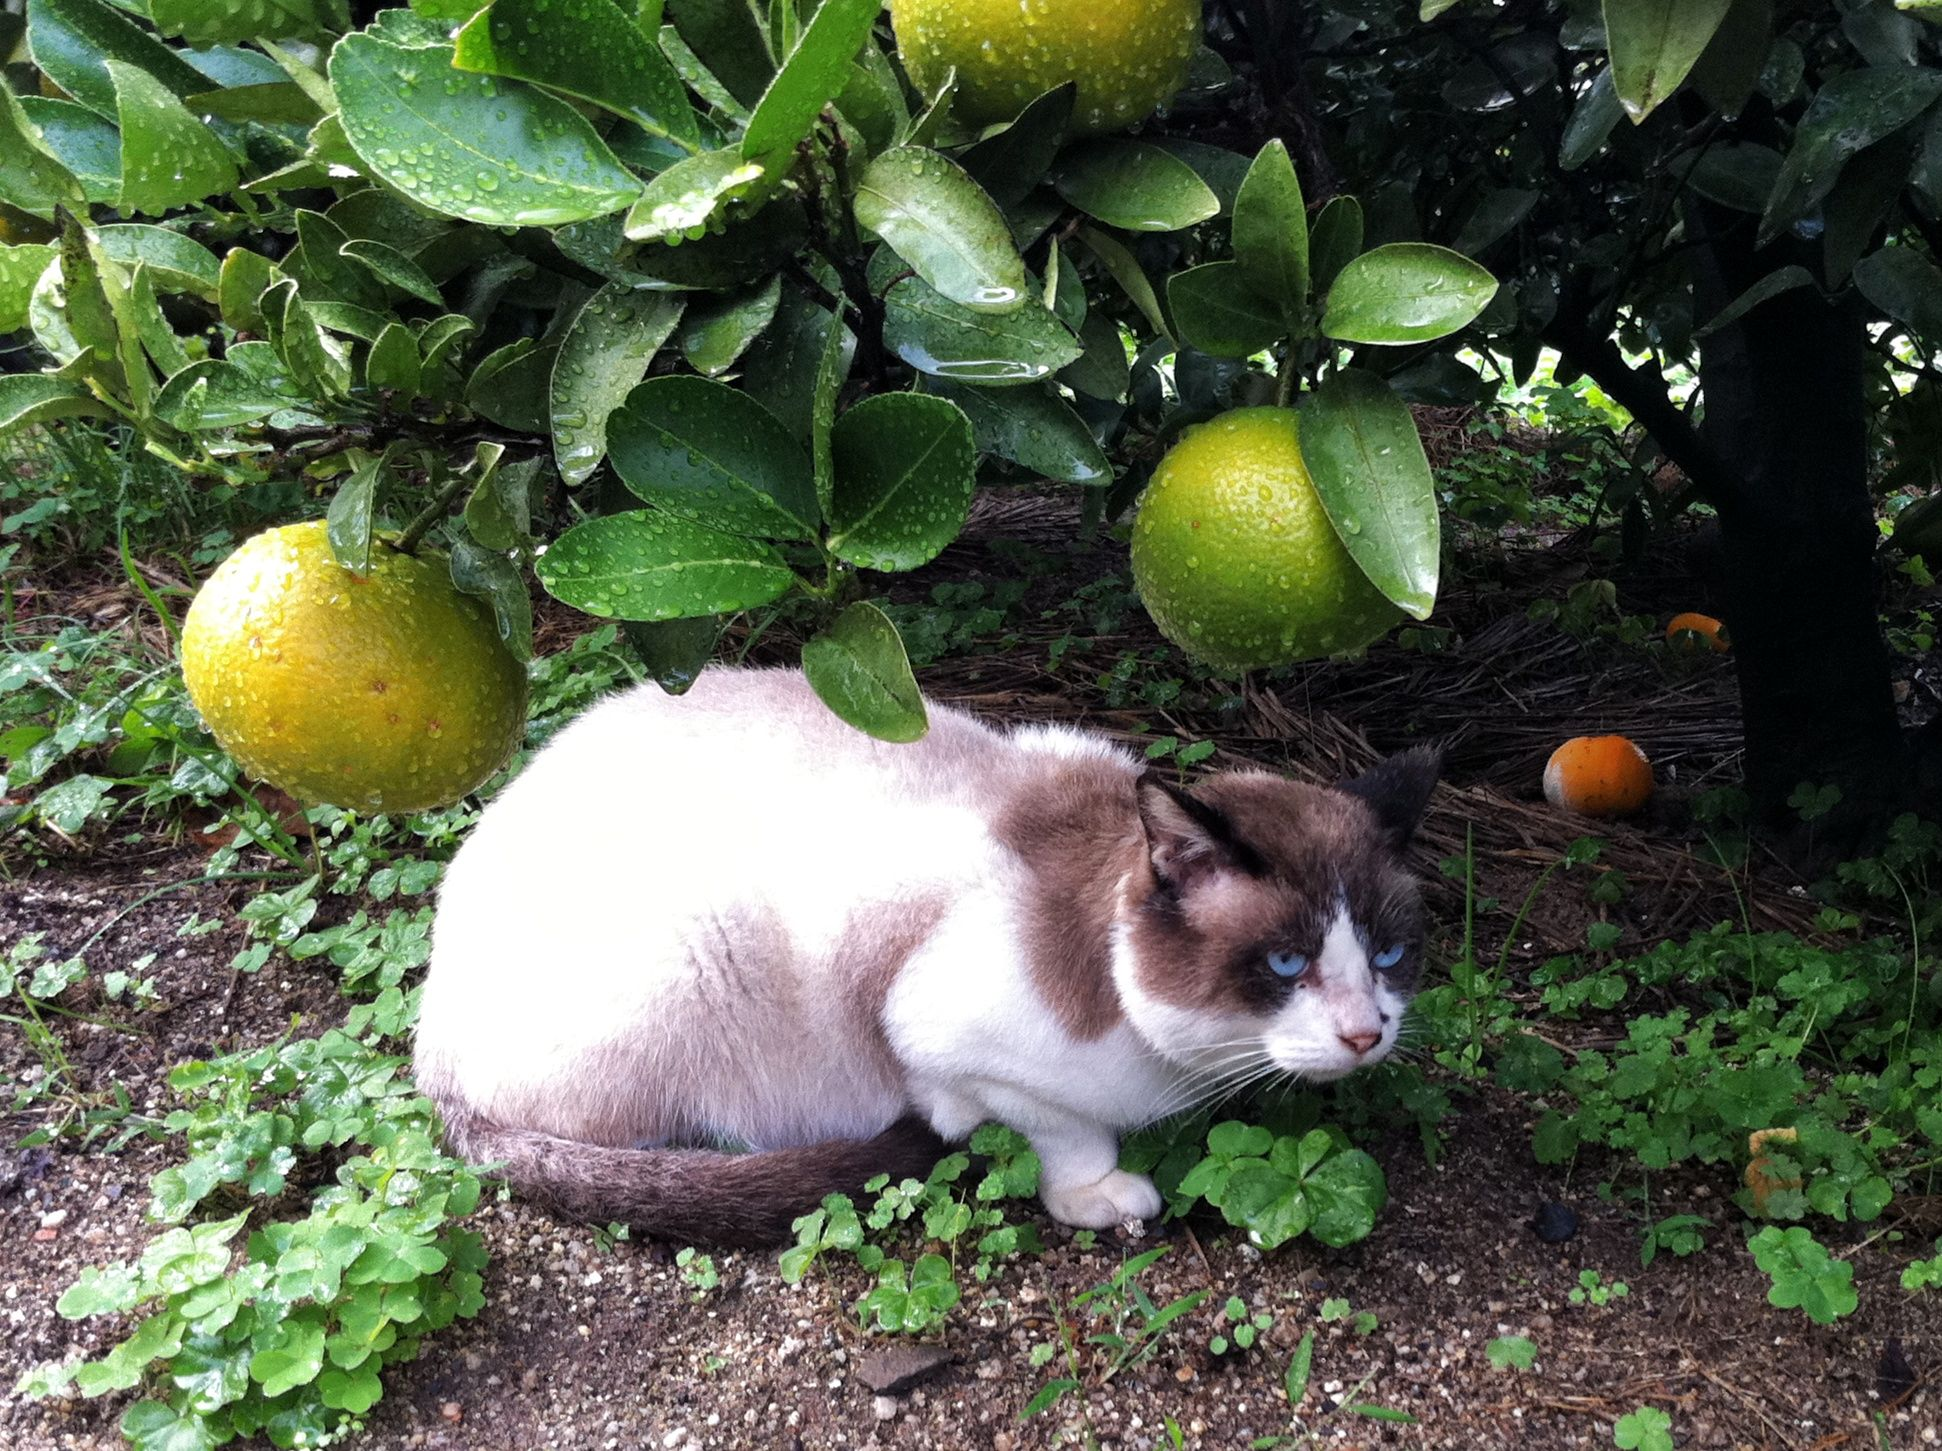 Mandarin oranges! This blue-eyed cat must be in Ehime #cat #Ehime